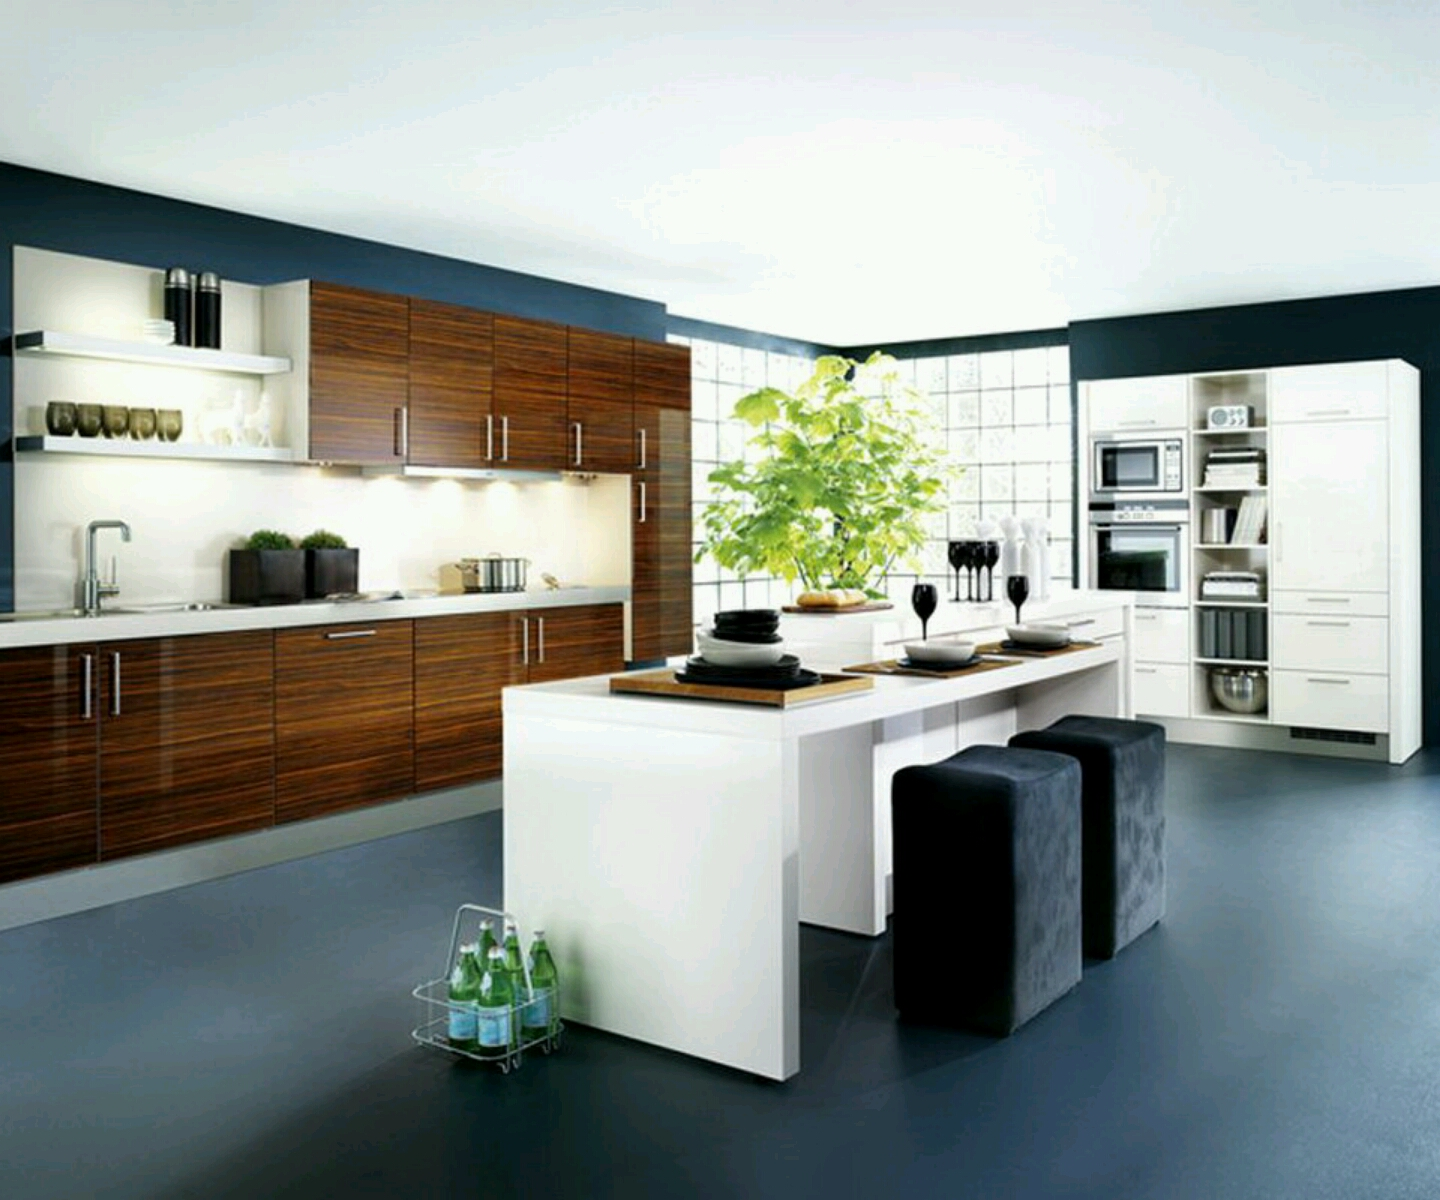 Pictures Of Modern Kitchen: New Home Designs Latest.: Kitchen Cabinets Designs Modern Homes